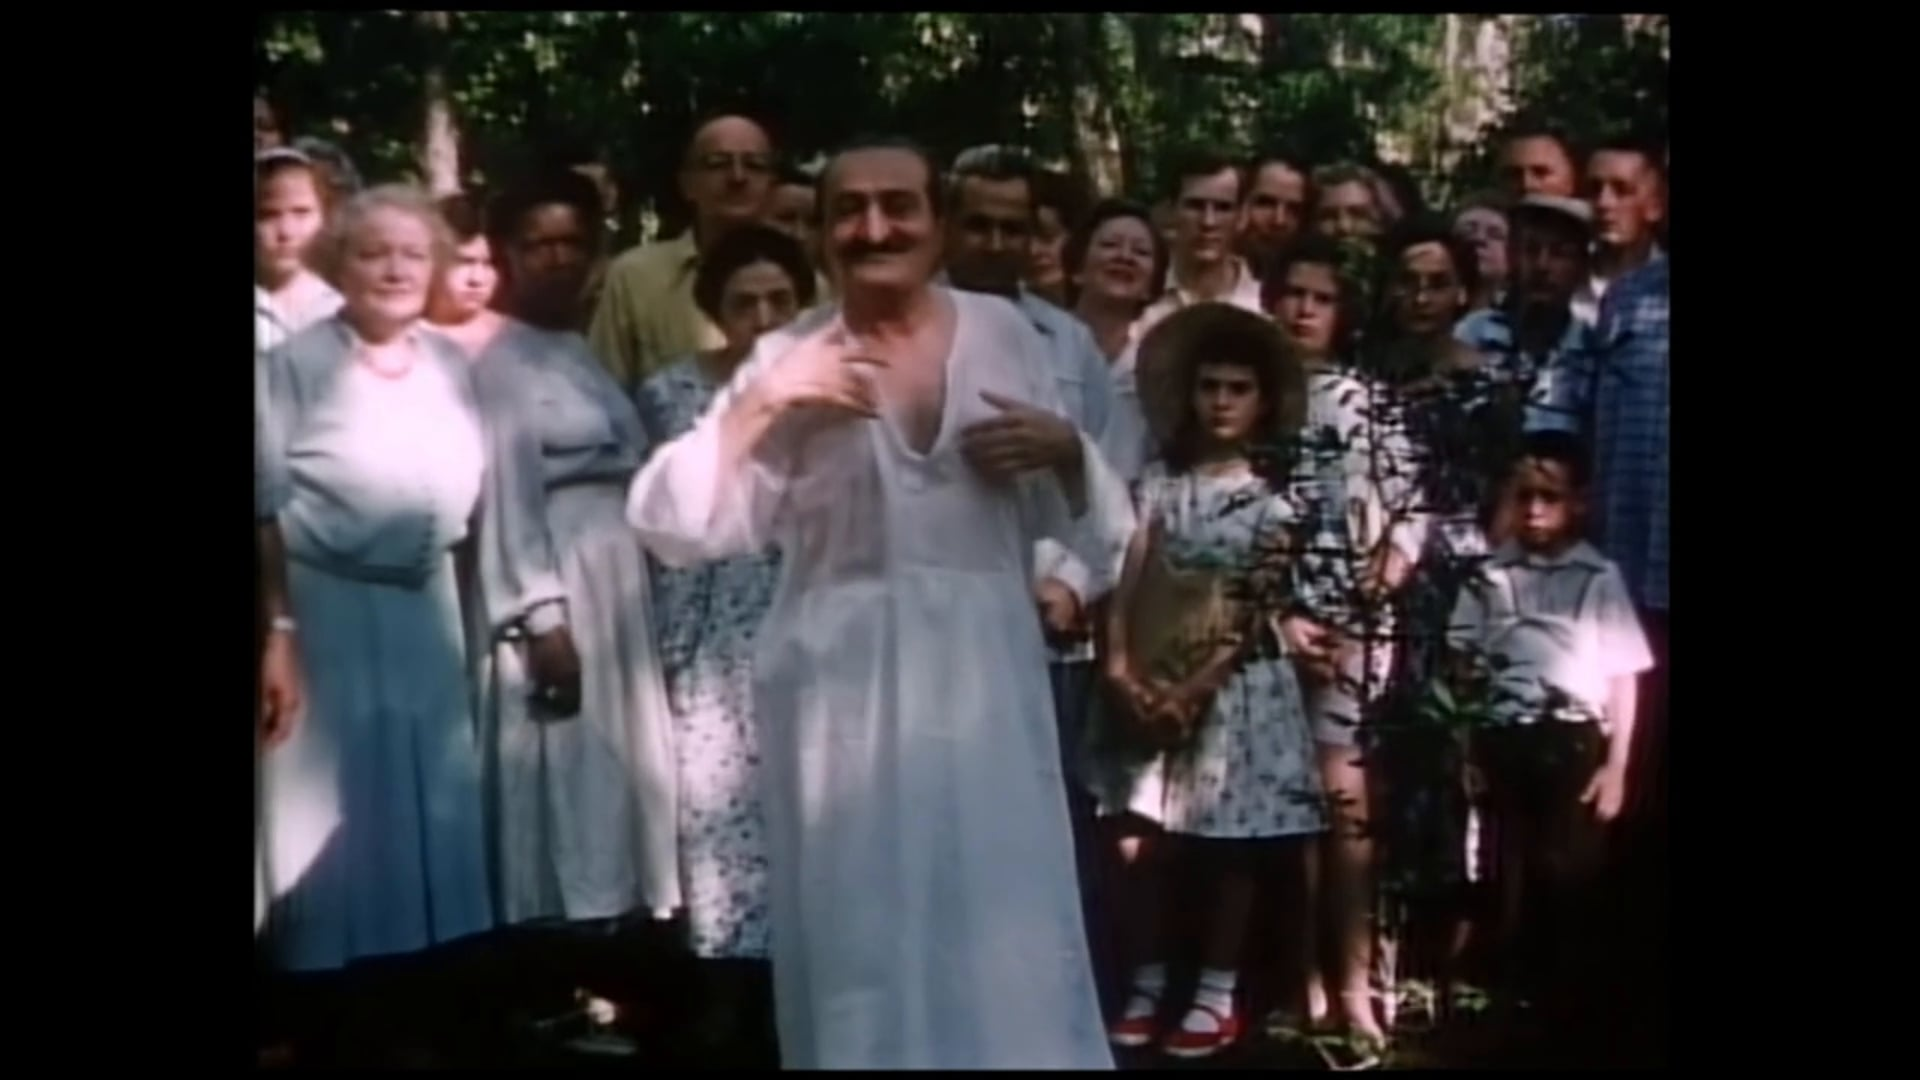 Scenes from Meher Baba's Tour of the United States, 1956